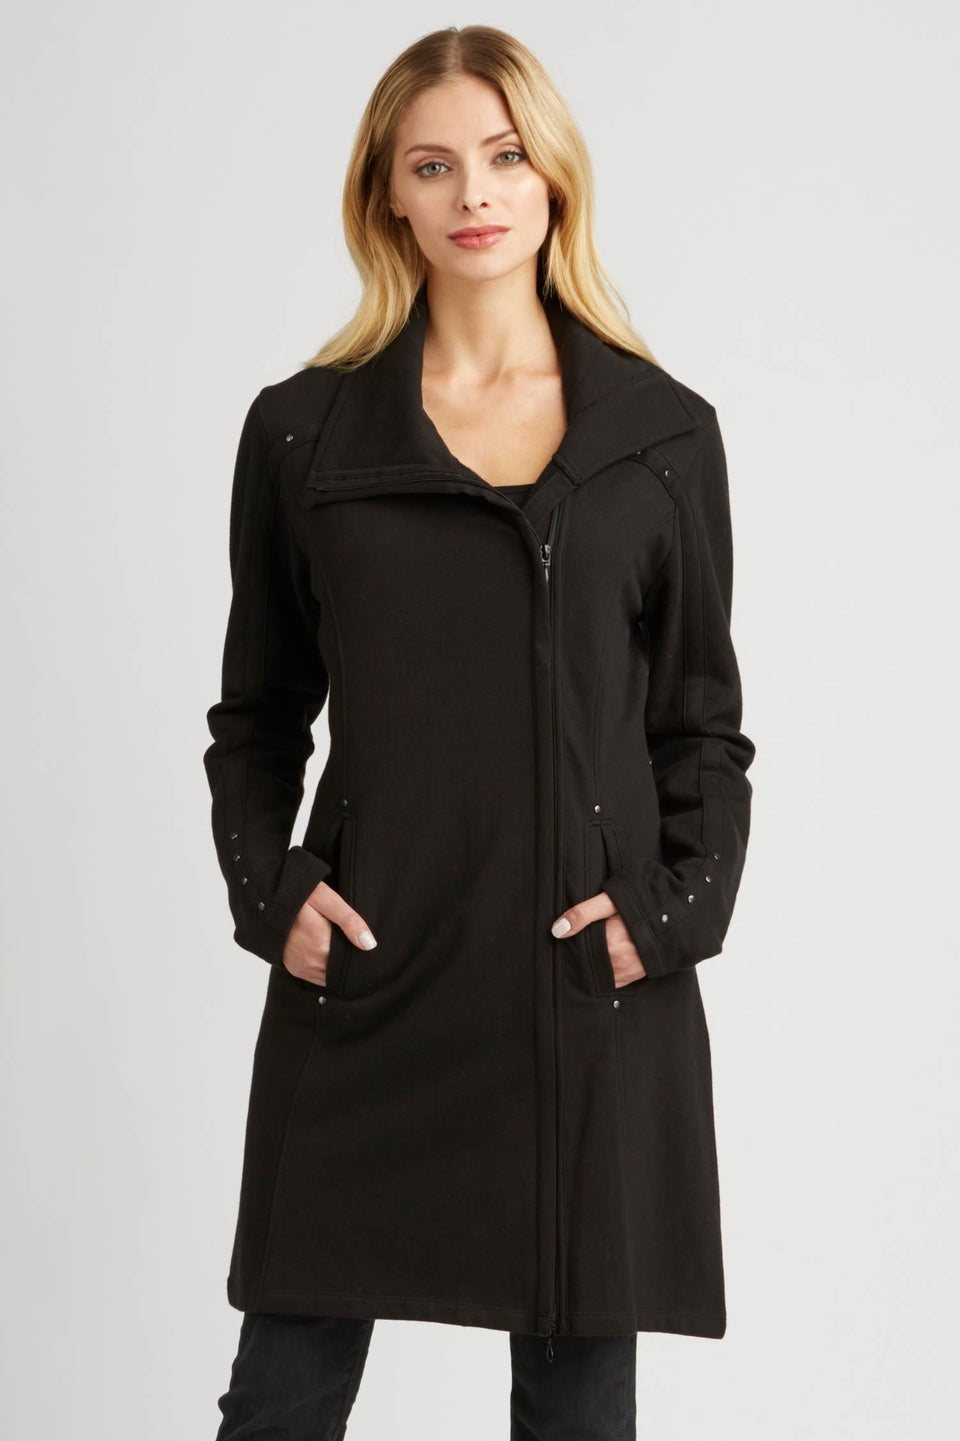 Urban Zip Coat in Black